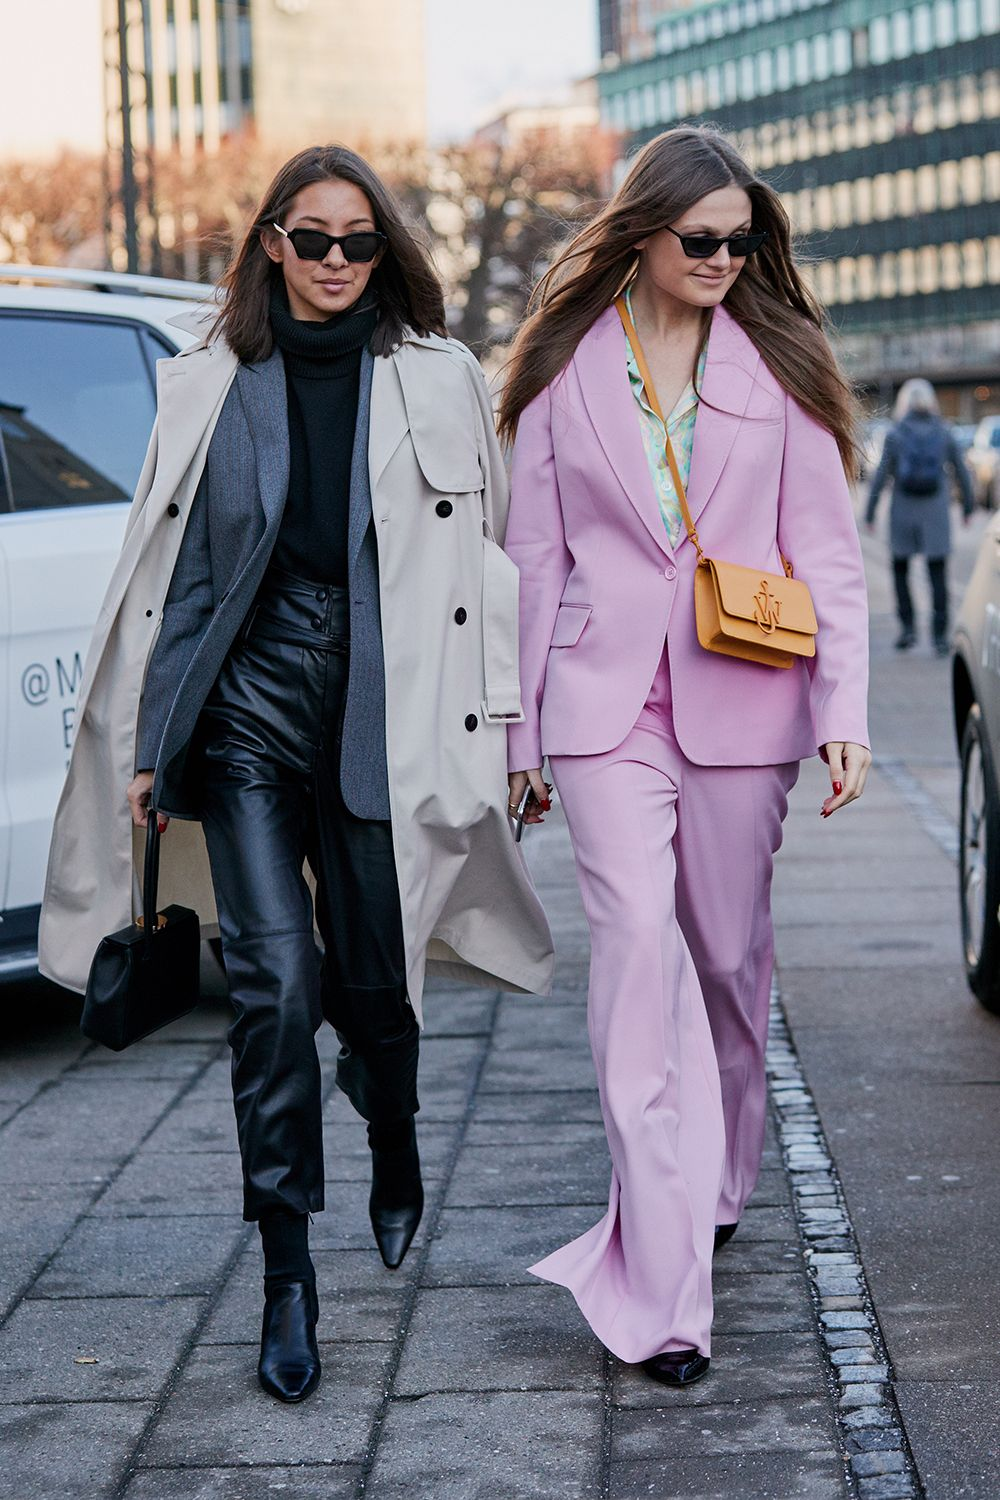 Why Fashion Girls Are Going to Start Sharing Their Clothes in 2019